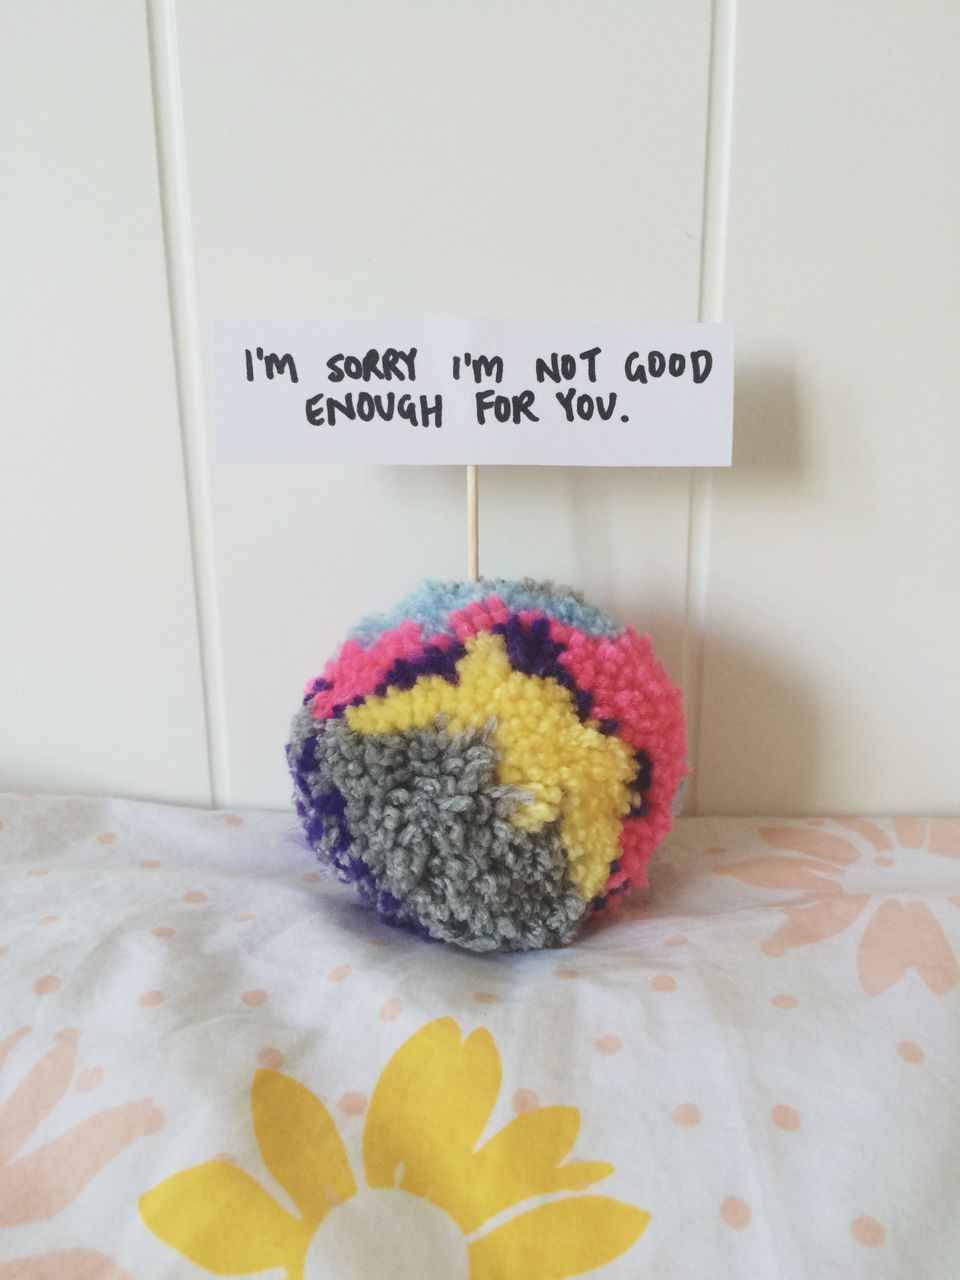 Artist Makes Apologizing Cool Again With Fluffy